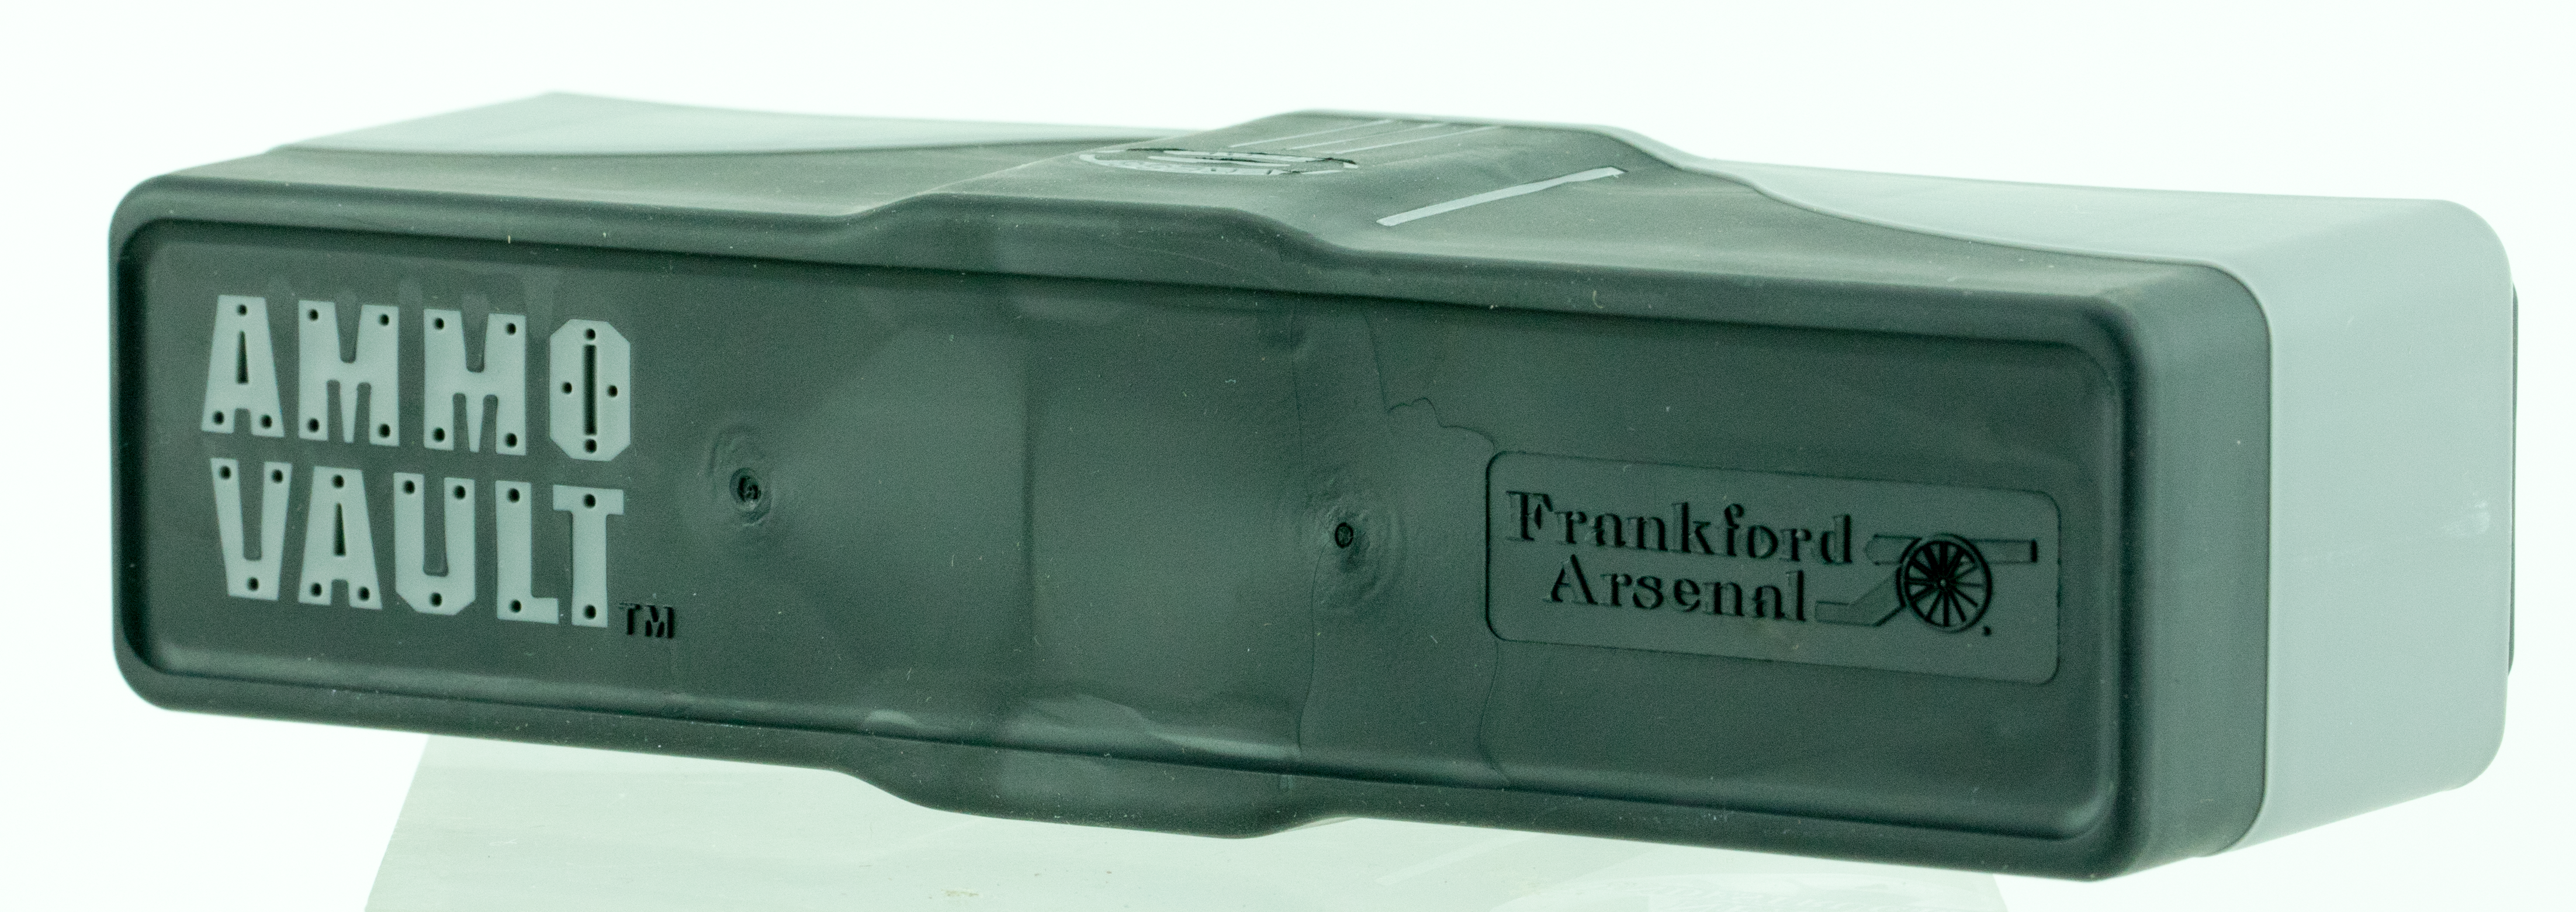 Frankford Arsenal 912610 Ammo Vault RLG-20 Ammuntion Box Lg 20rd Plastic Gray/Black